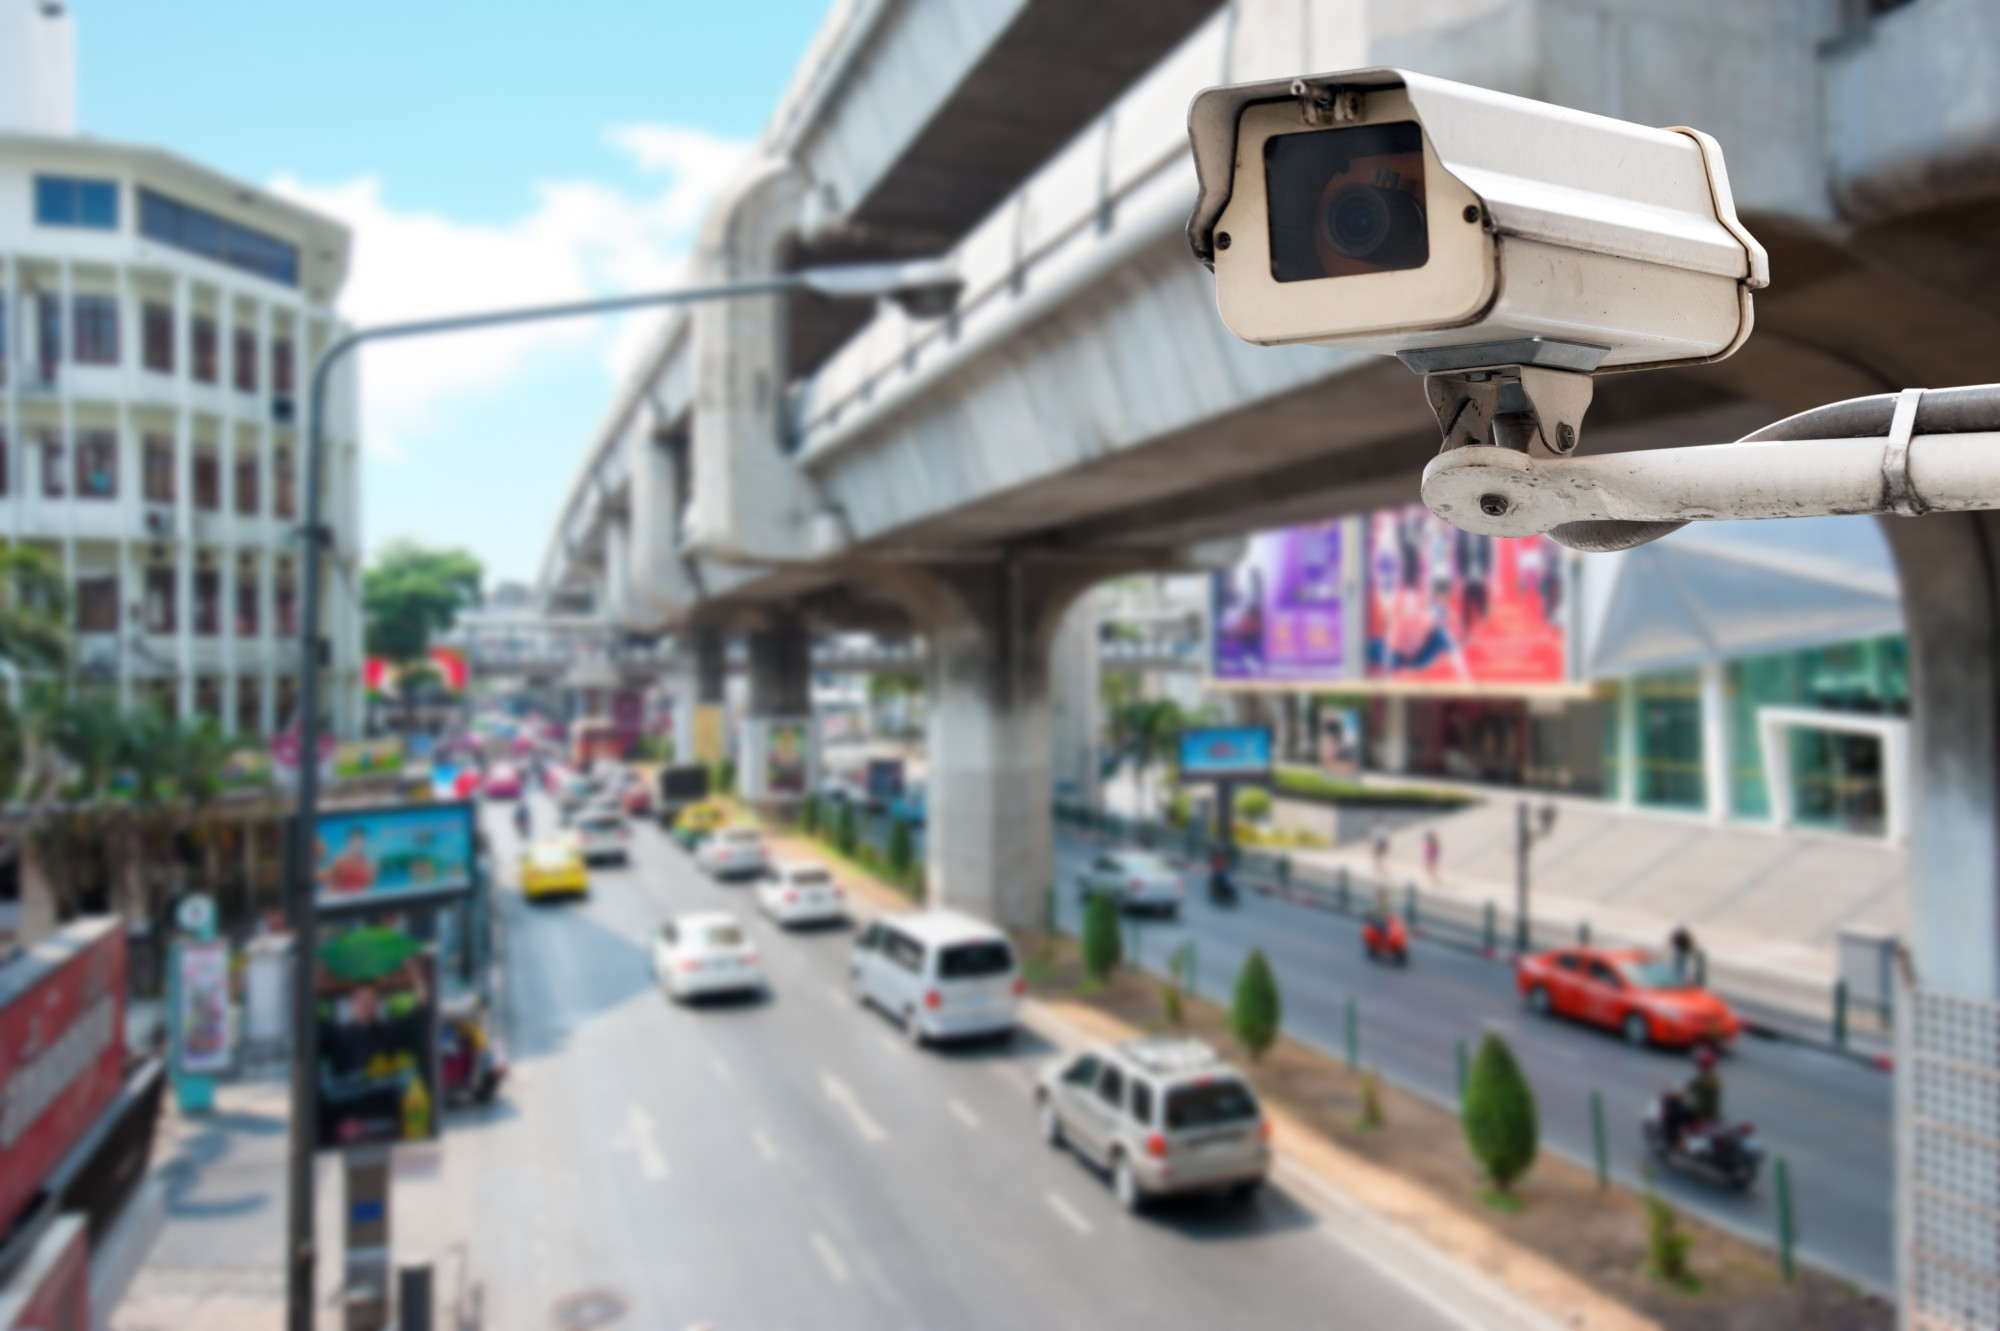 CCTV Operating on Traffic Road